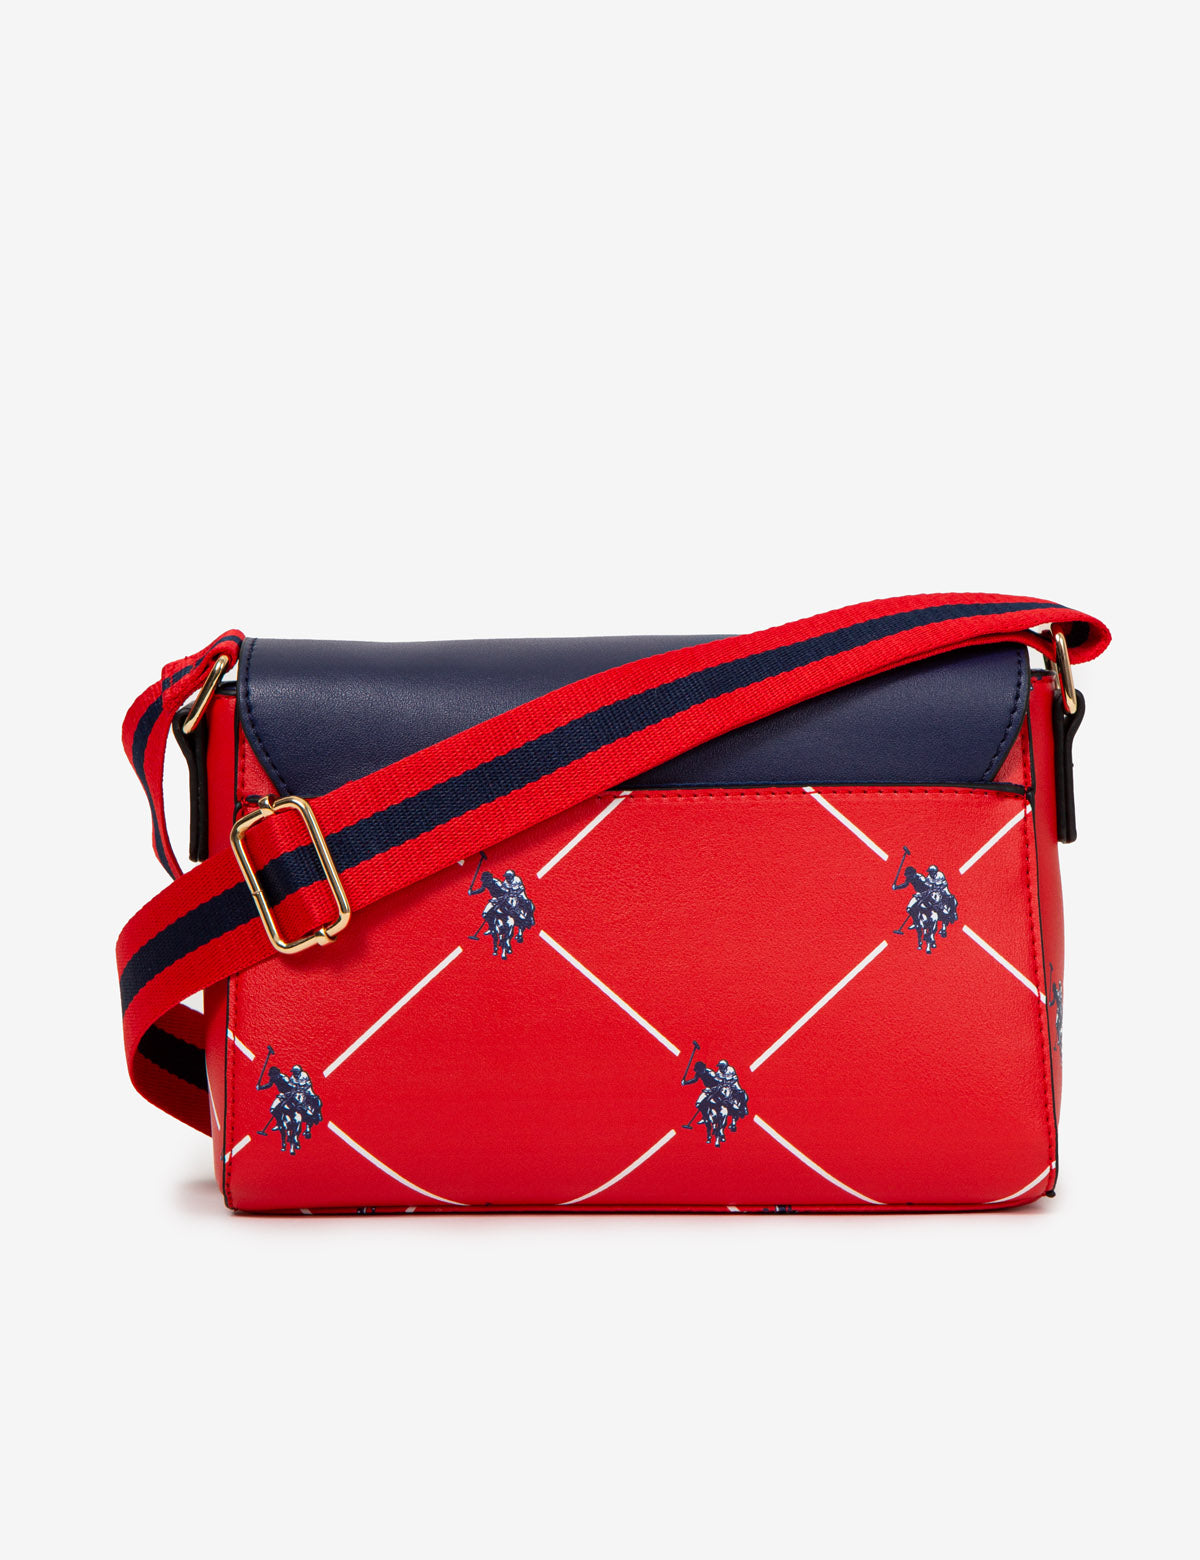 HERITAGE CROSSBODY BAG - U.S. Polo Assn.